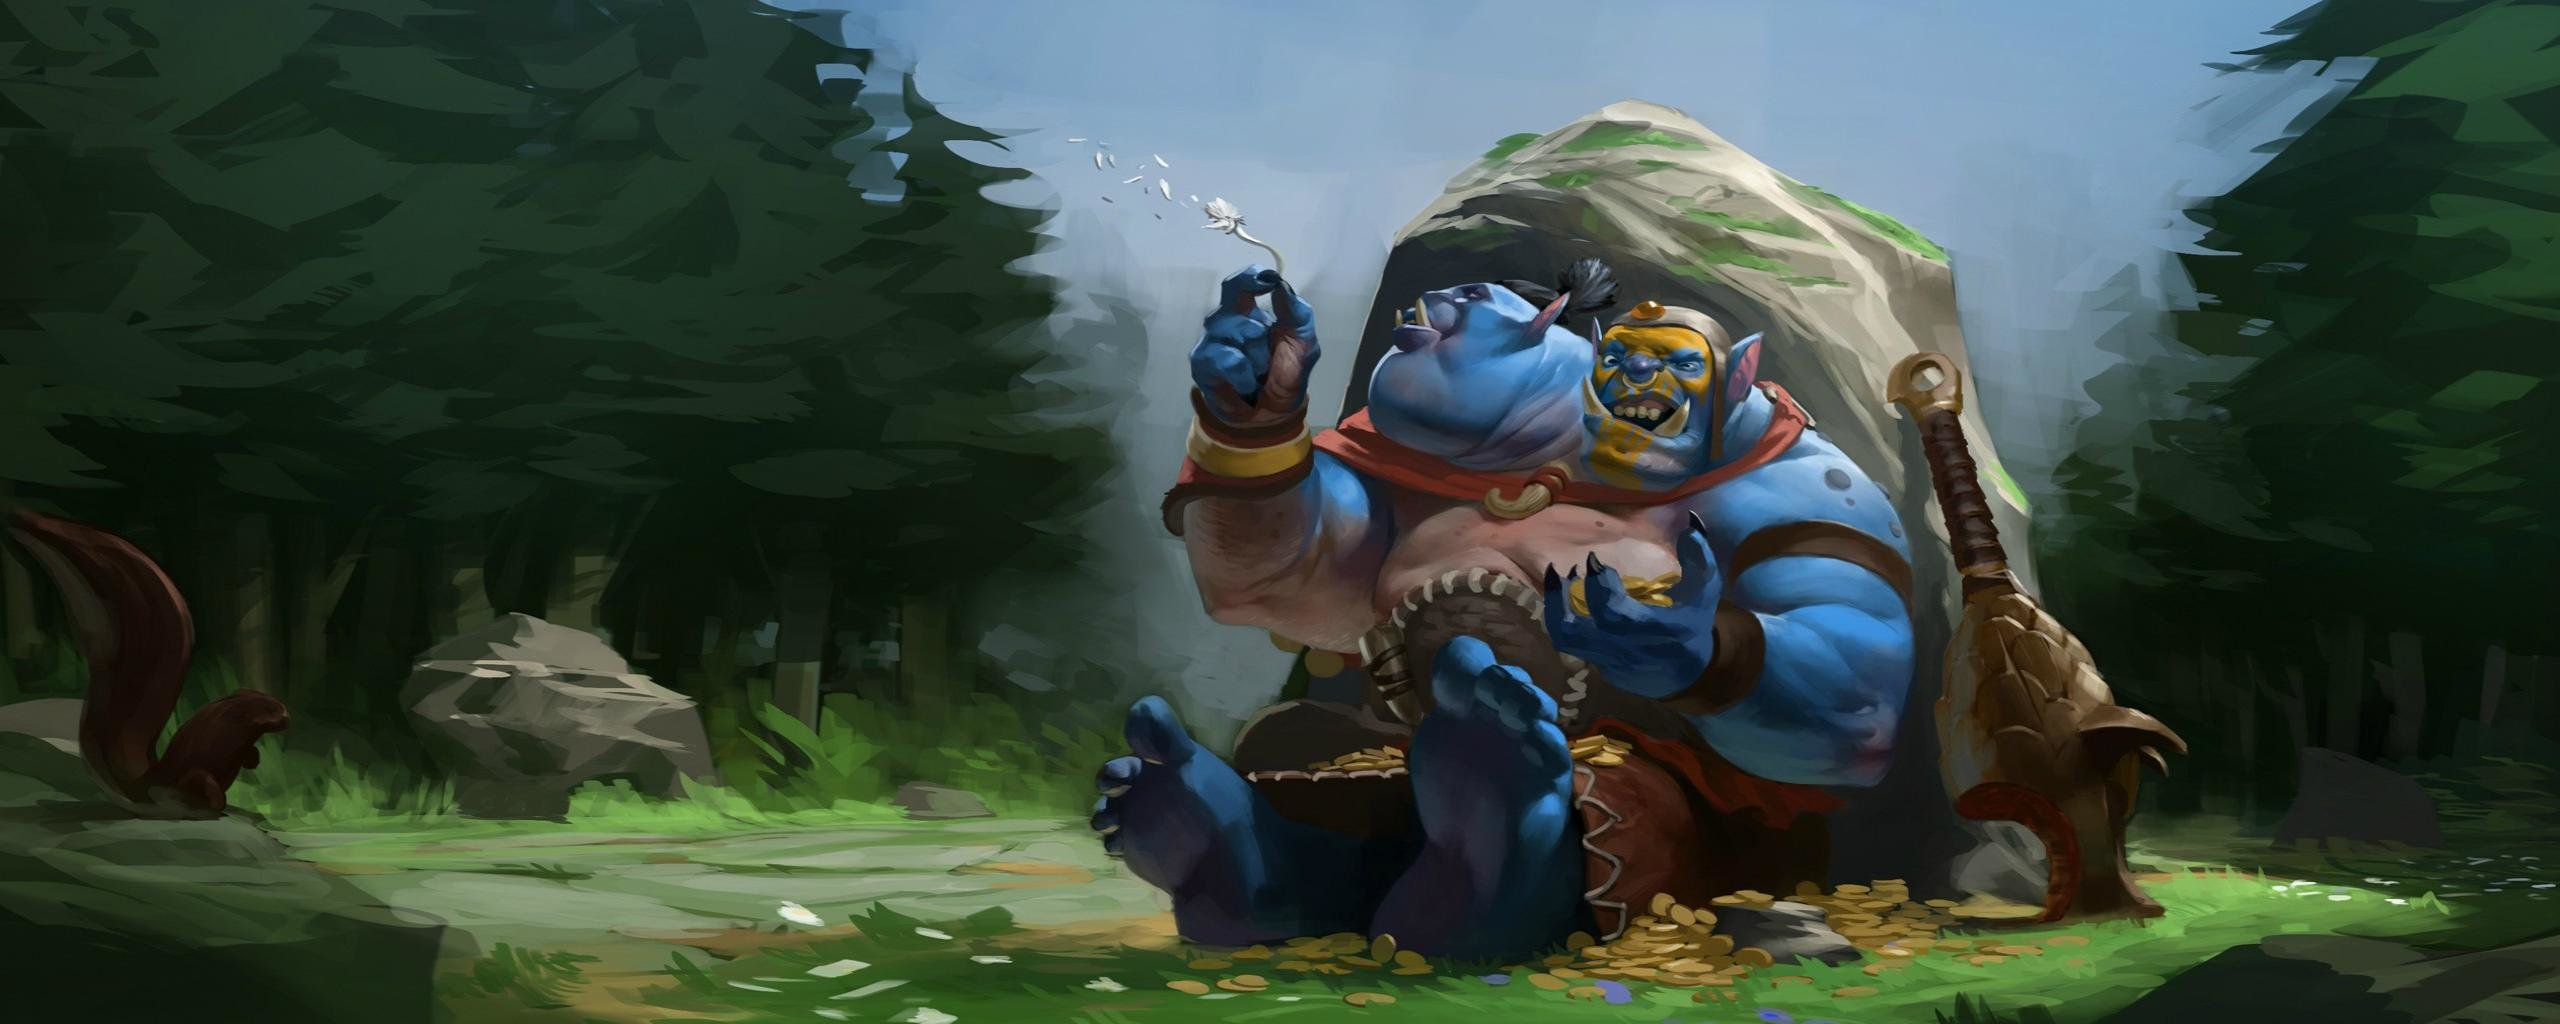 Download dual screen 2560x1024 DotA 2 computer wallpaper ID:302427 for free